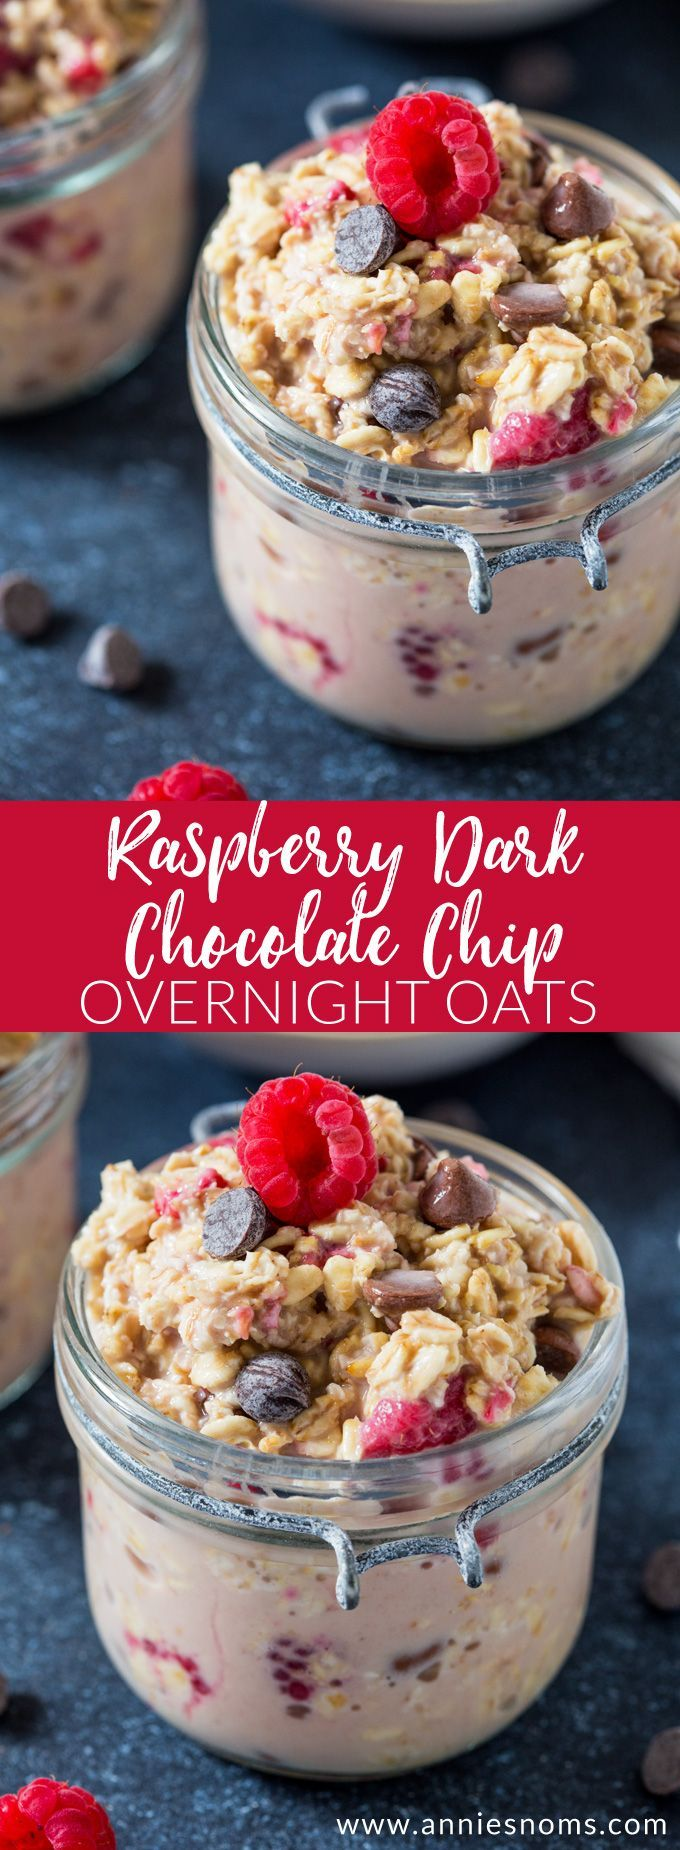 Thick and creamy overnight oats peppered with fresh raspberries and dark chocolate chips. Make ahead and proving you can eat chocolate for breakfast!